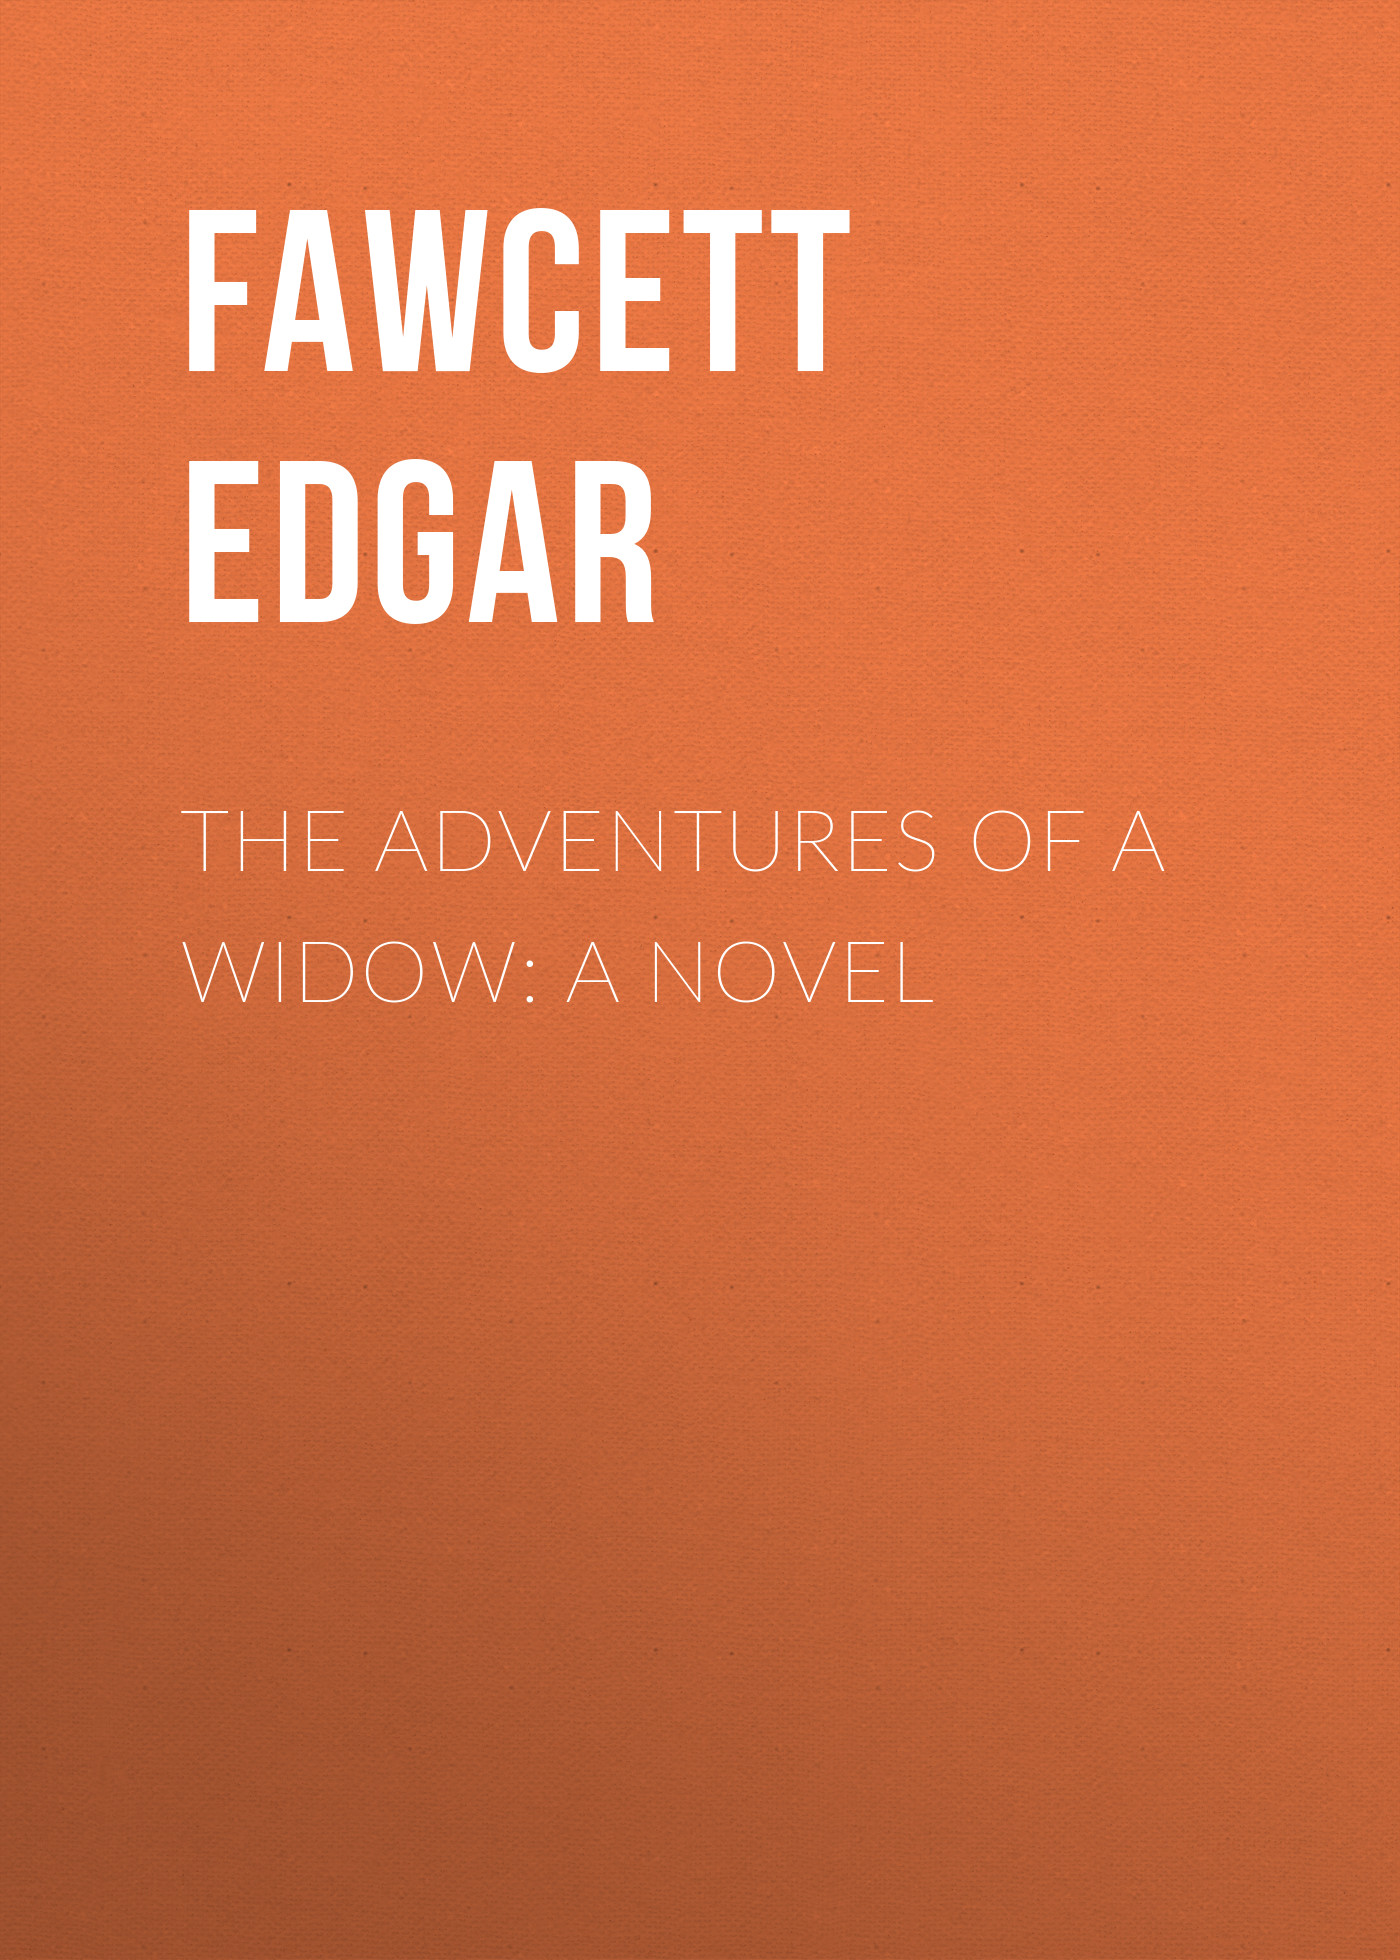 Fawcett Edgar The Adventures of a Widow: A Novel